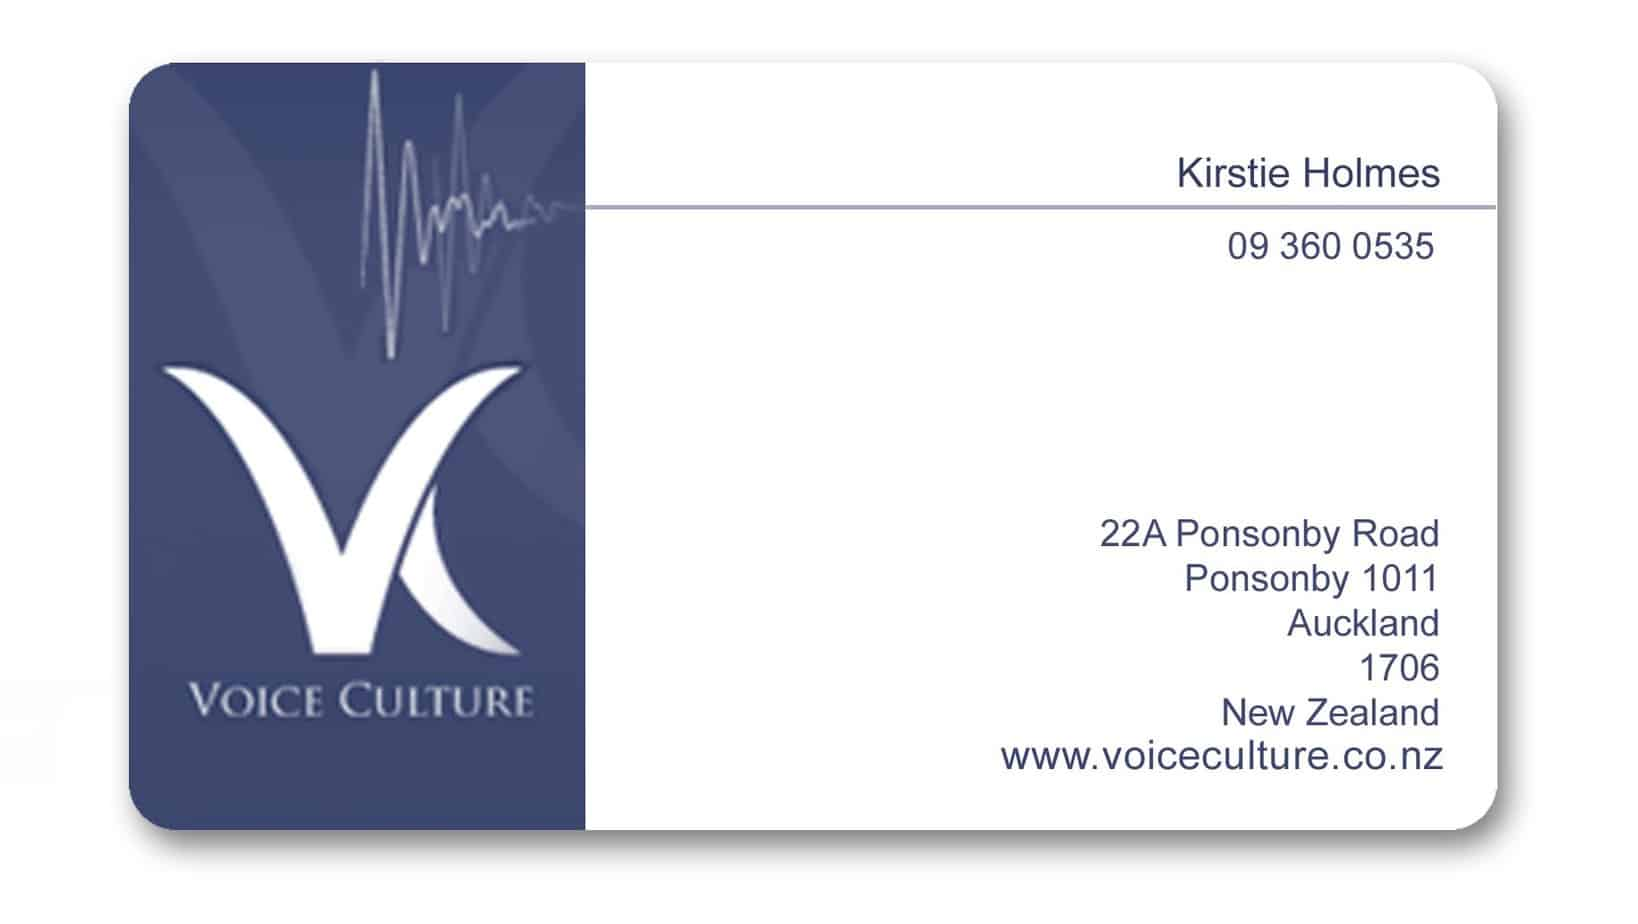 8 Visiting Card Templates - Excel PDF Formats